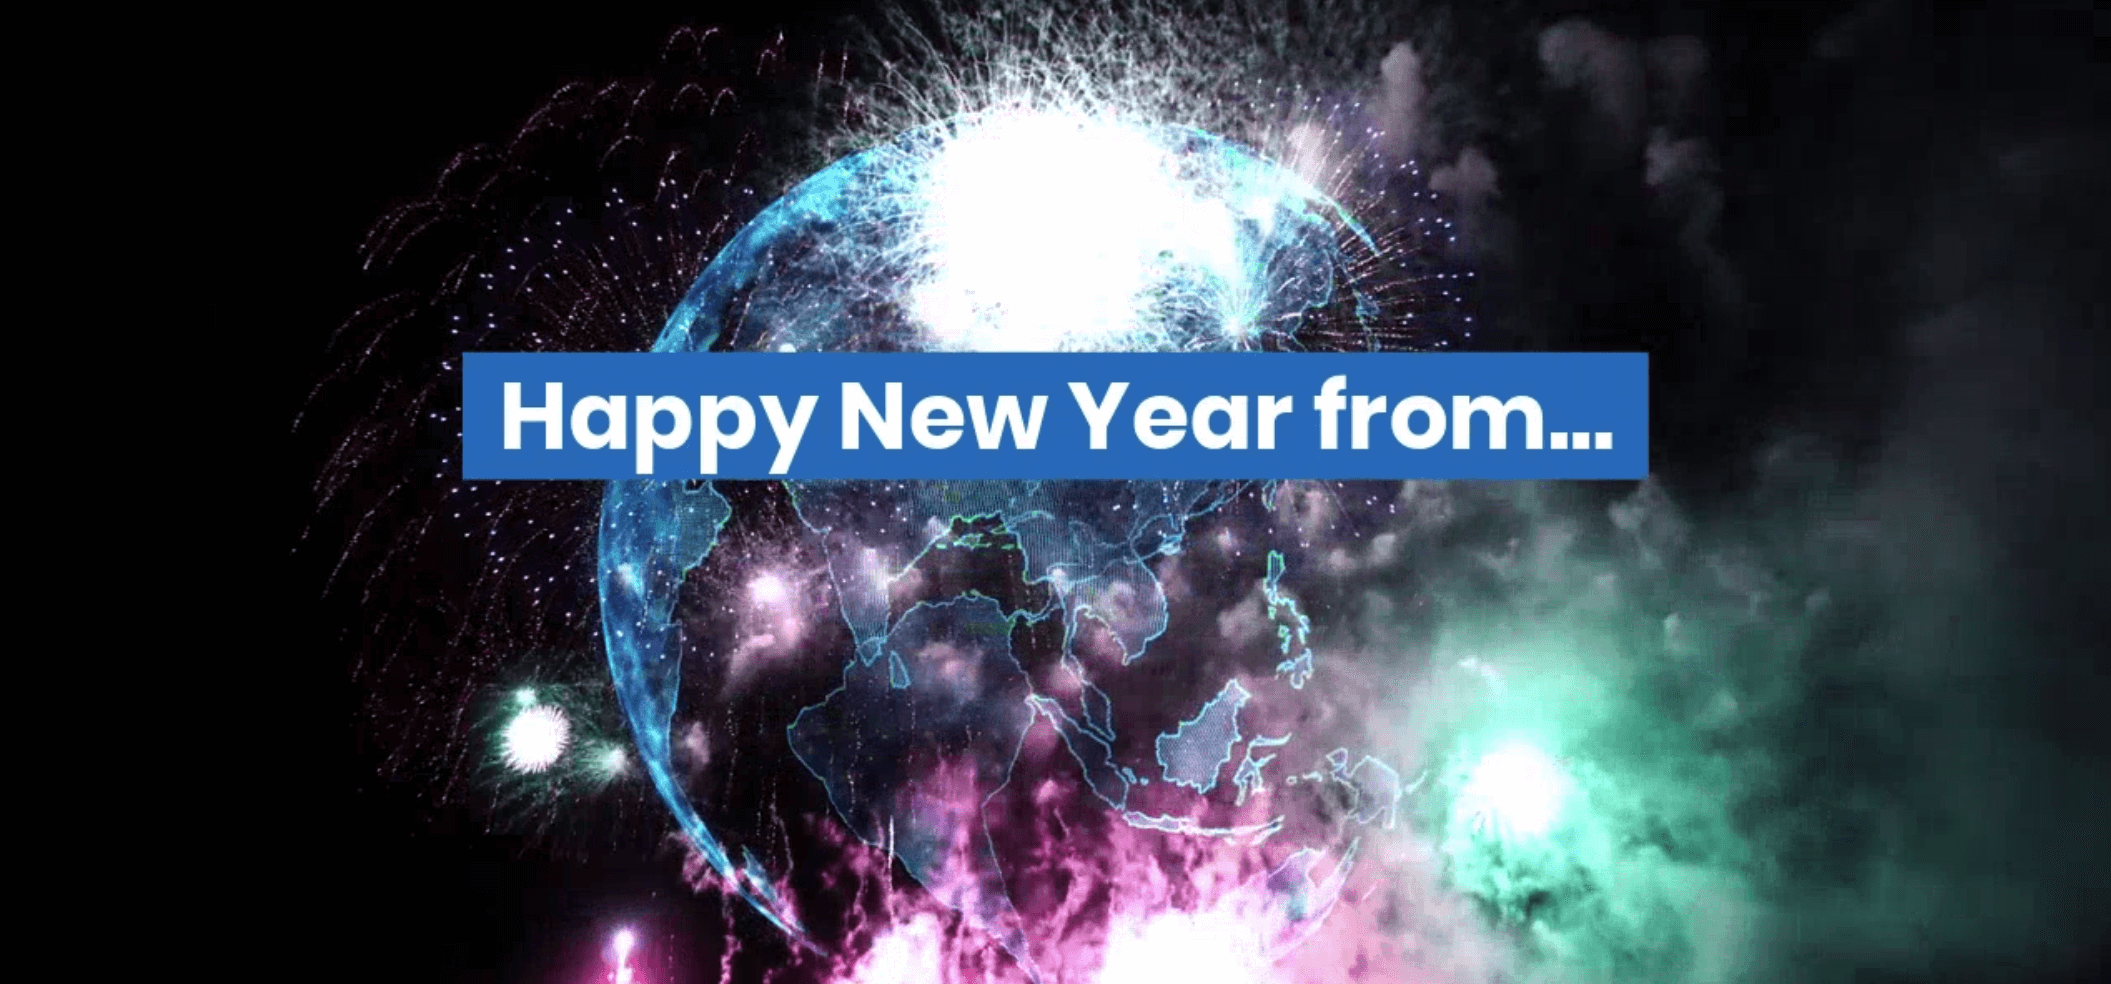 Happy New Year from Tacoma Sister Cities!